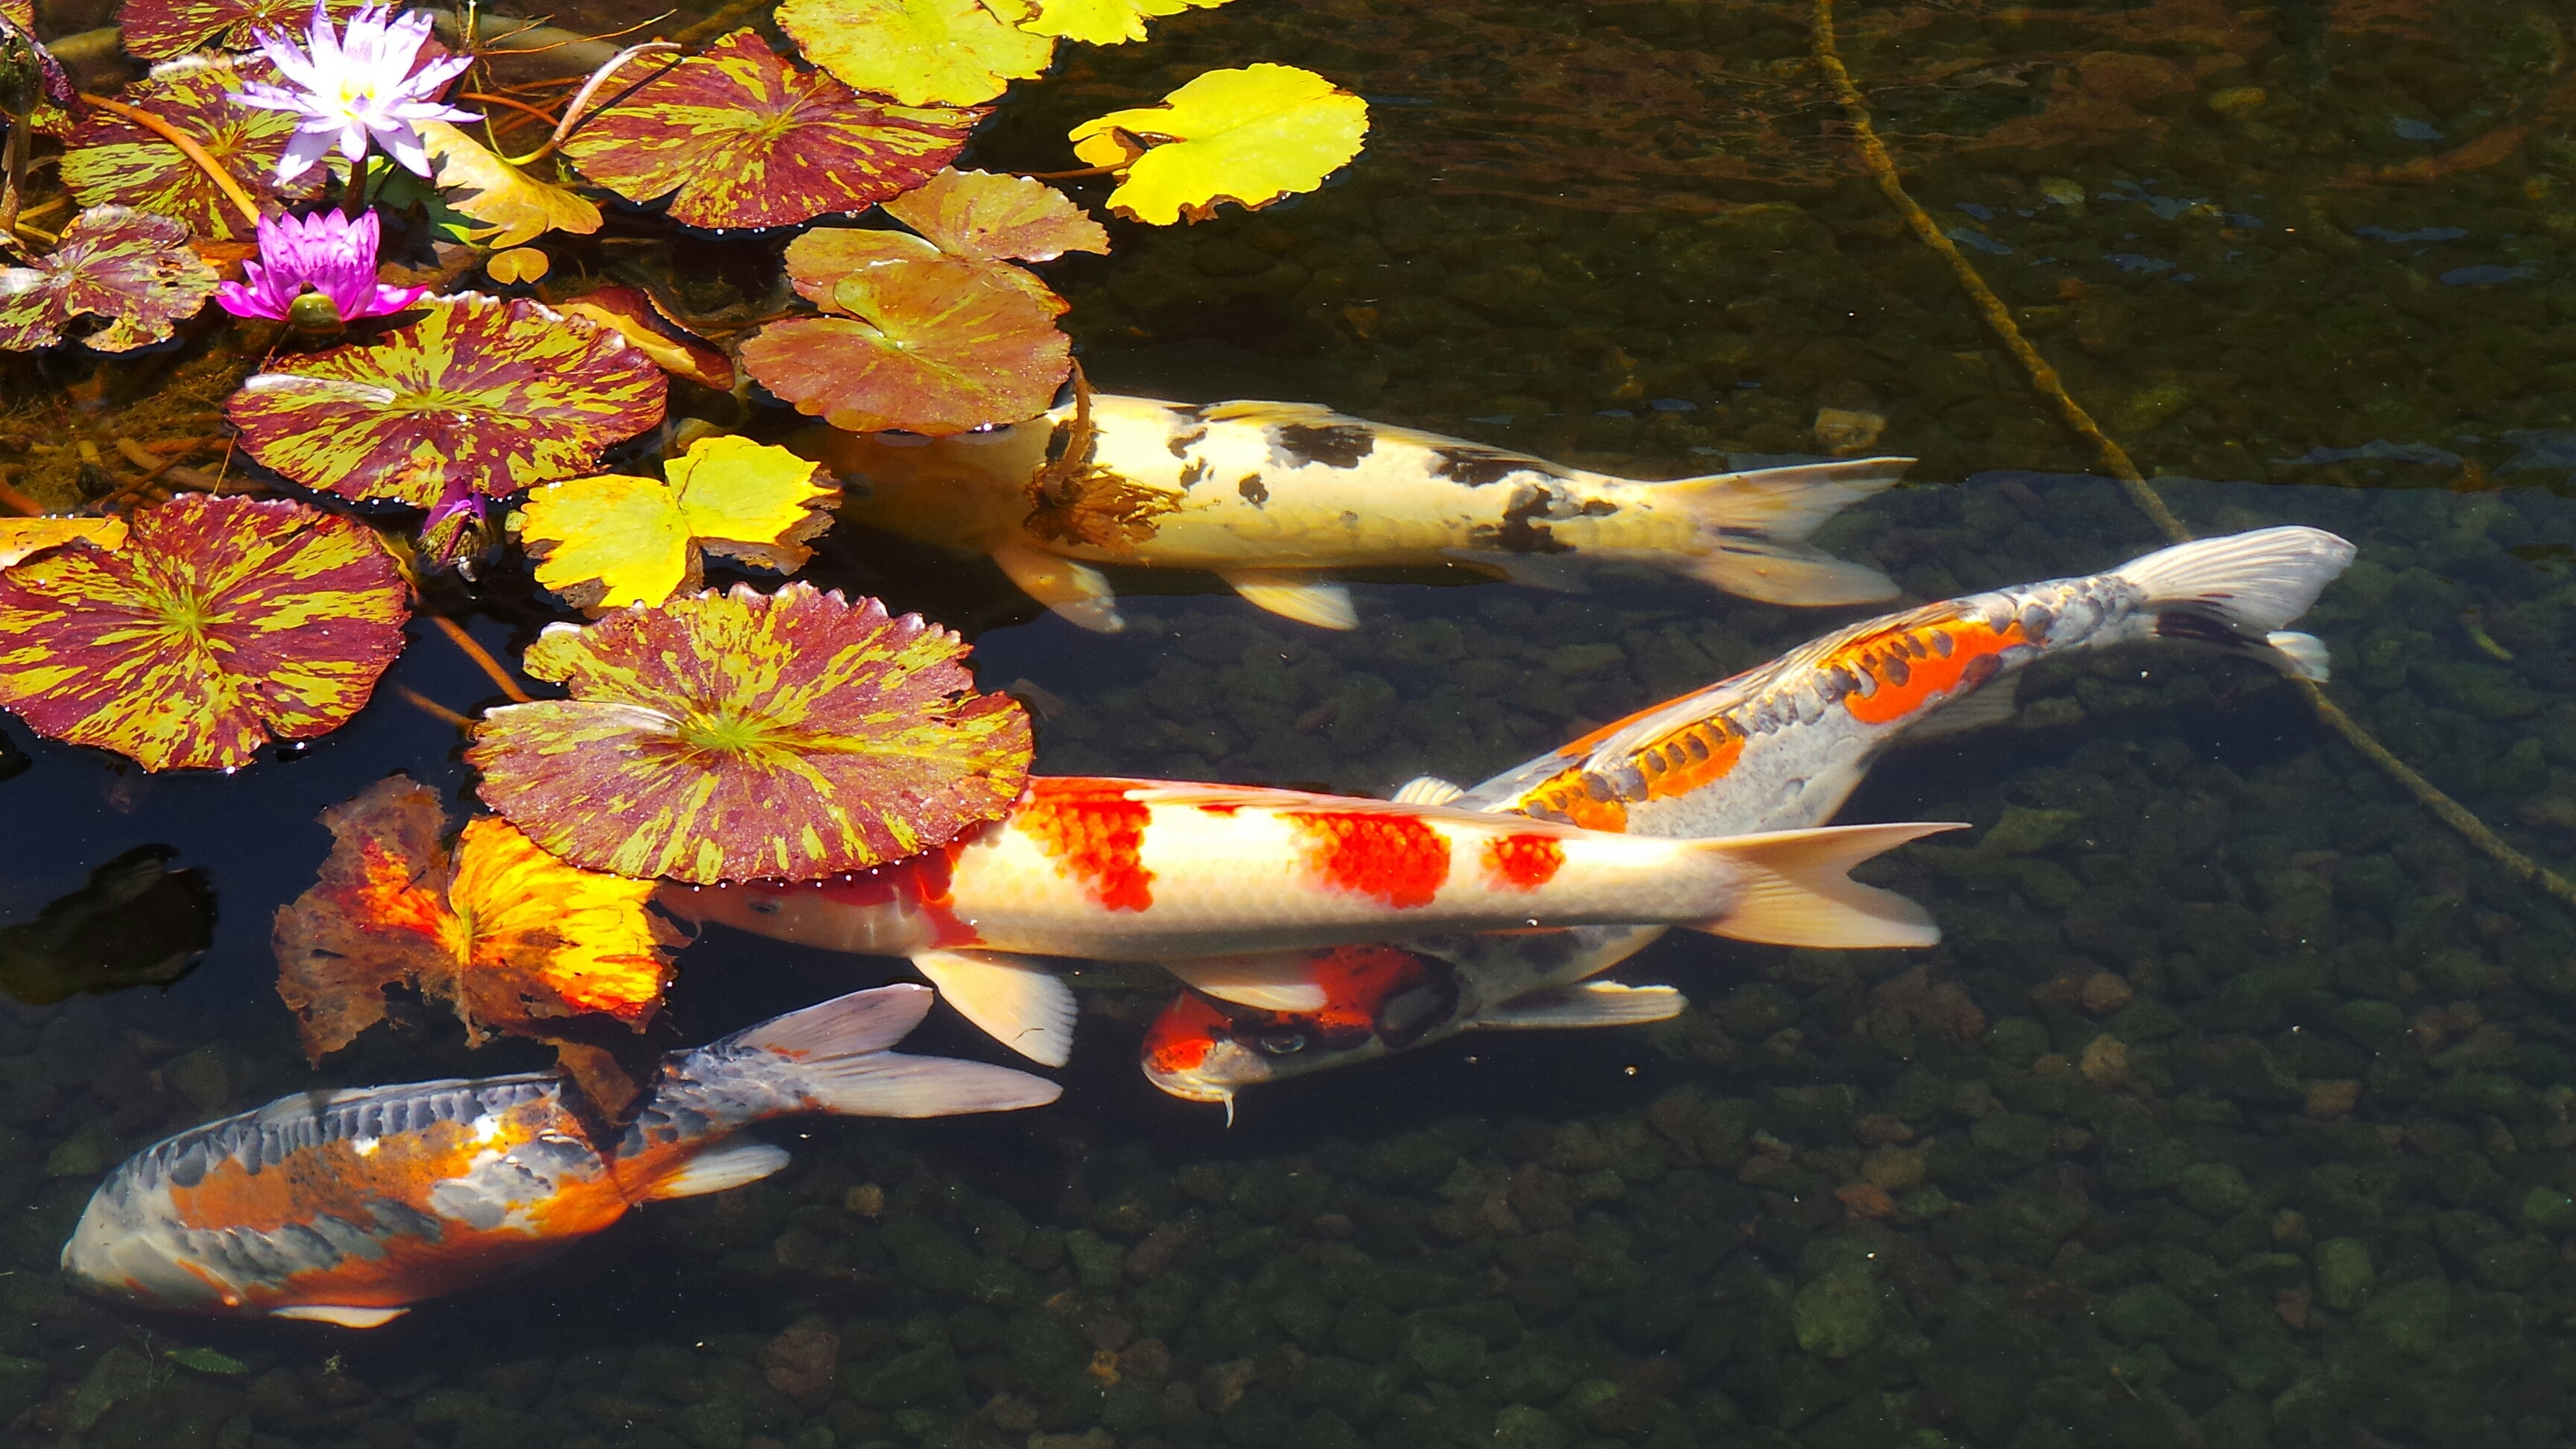 Guide to the fashion island koi ponds in newport beach for The koi pool